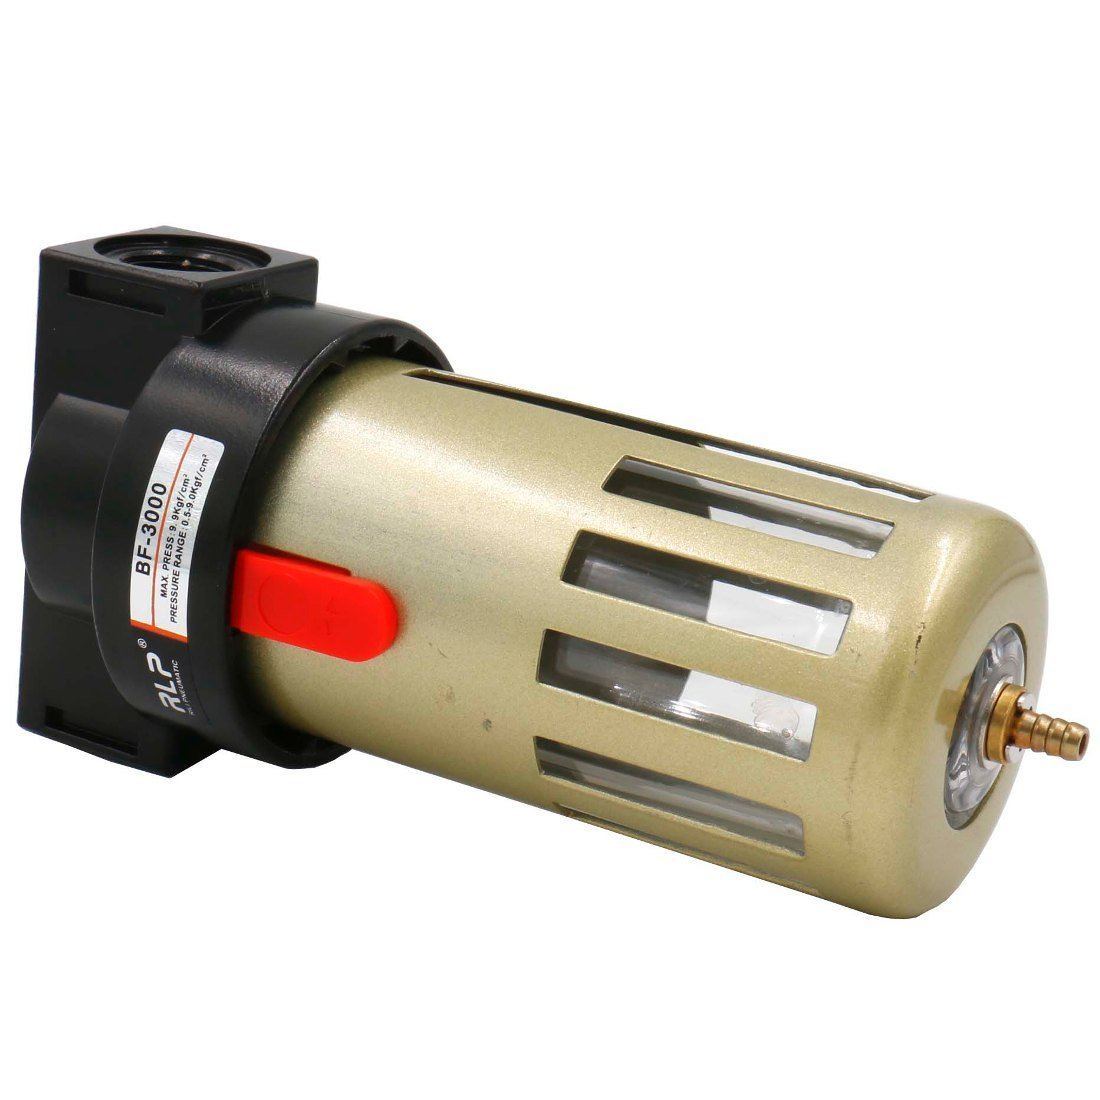 Baomain Pneumatic Component Filter BF 3000 Air Source Treatment